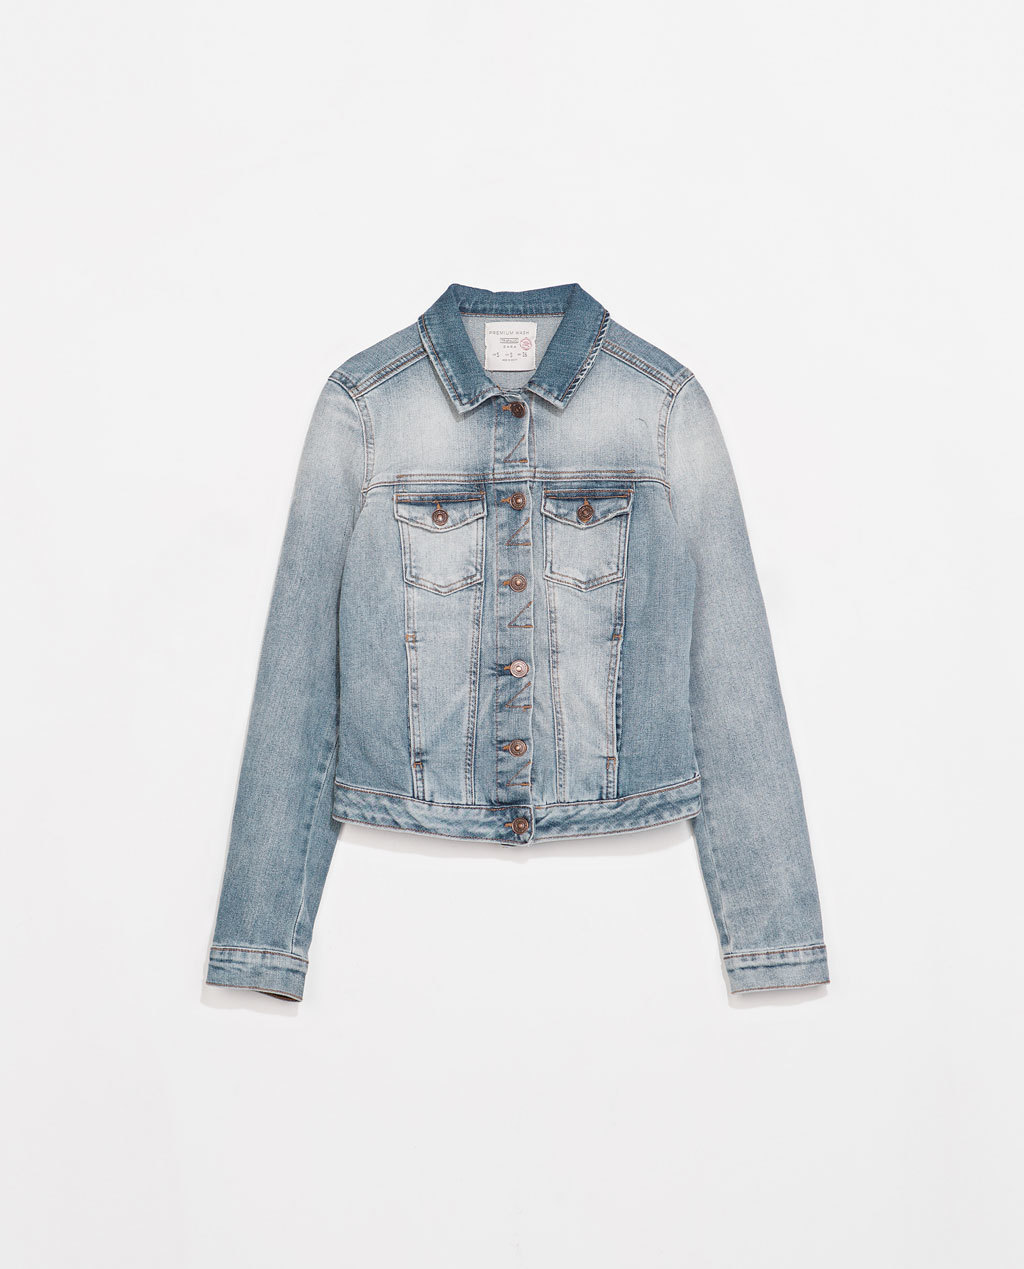 Denim Jacket - pattern: plain; style: denim; predominant colour: denim; occasions: casual; length: standard; fit: straight cut (boxy); fibres: cotton - stretch; collar: shirt collar/peter pan/zip with opening; sleeve length: long sleeve; sleeve style: standard; texture group: denim; collar break: high/illusion of break when open; pattern type: fabric; season: s/s 2014